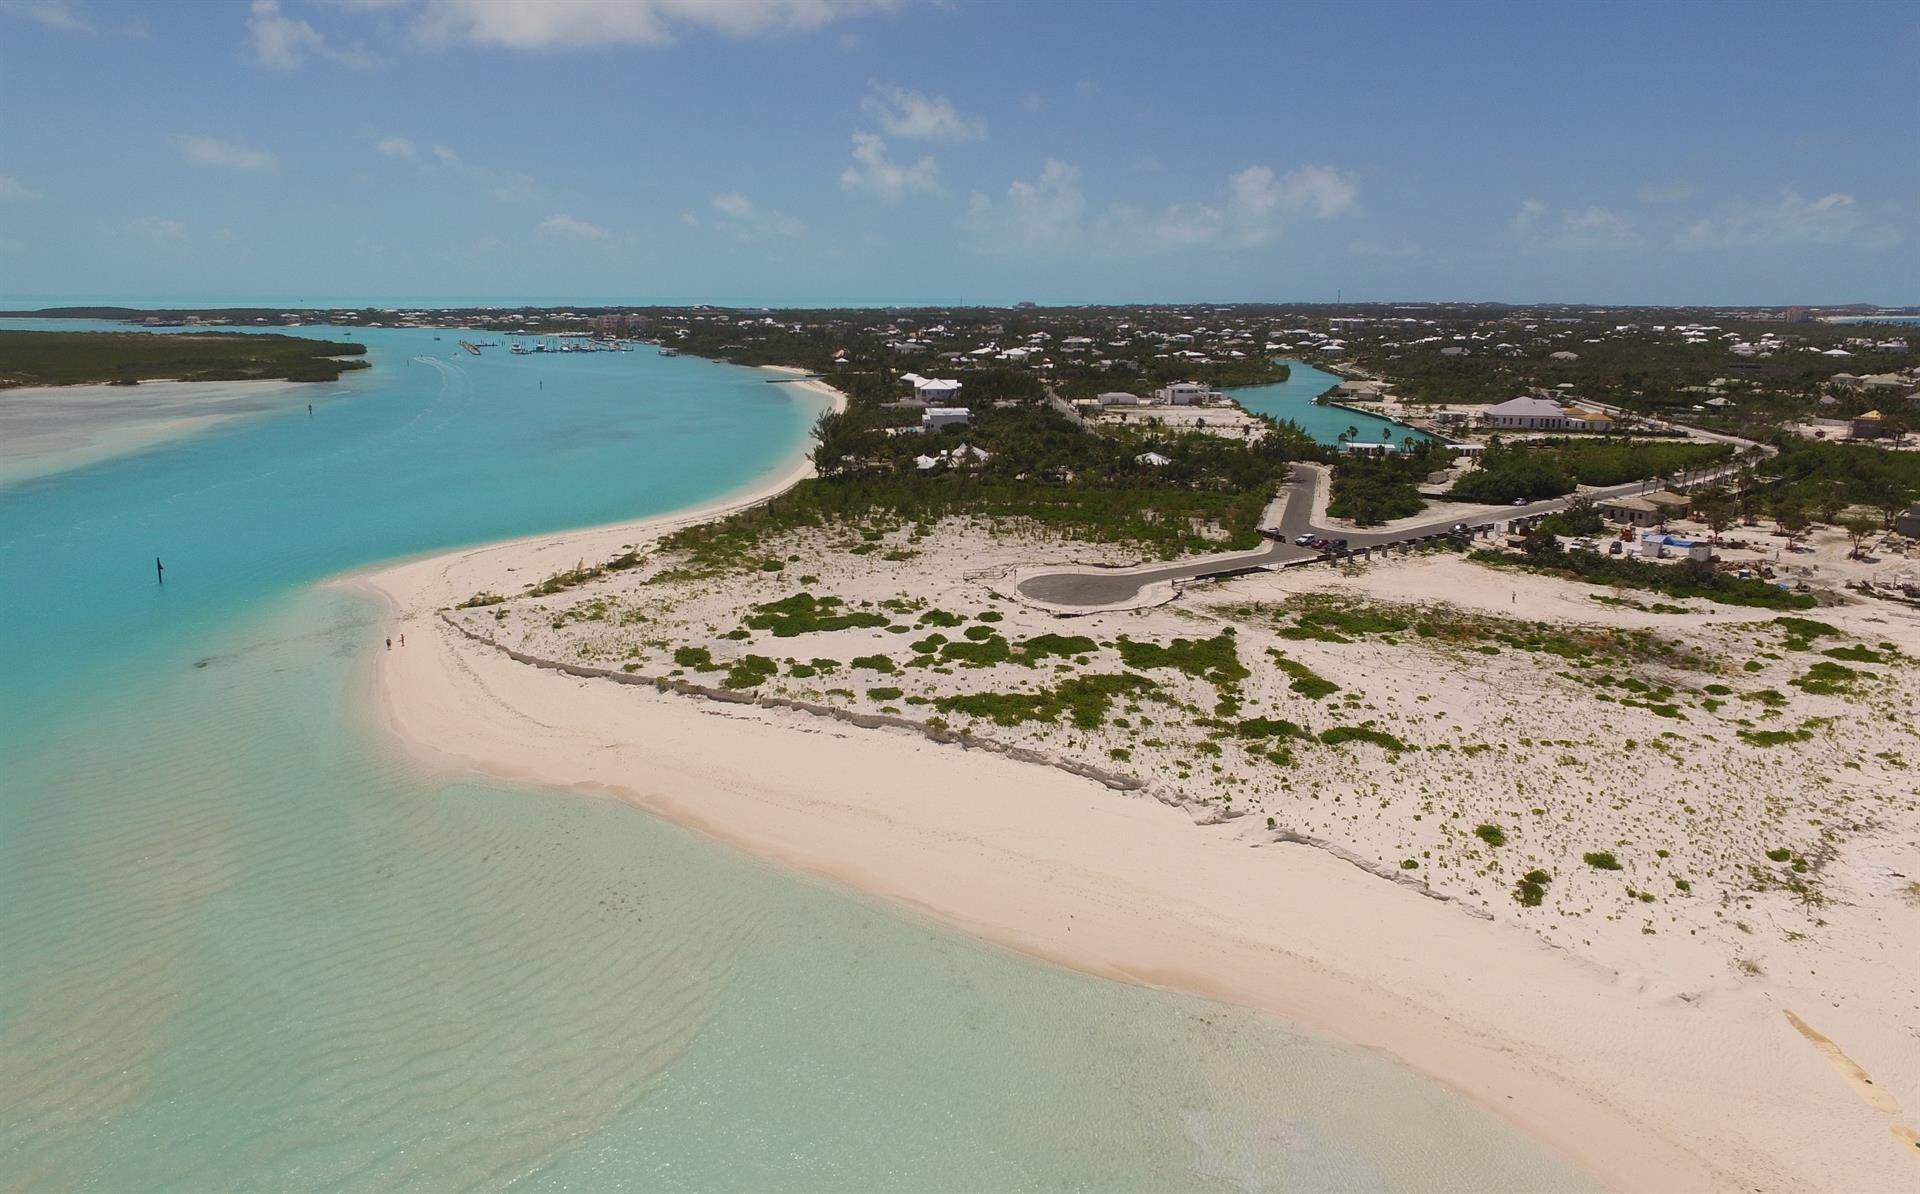 Land/Lot for Sale at Beachfront Lot Emerald Point Beach Lot 135 Leeward, Providenciales,BWI Turks And Caicos Islands